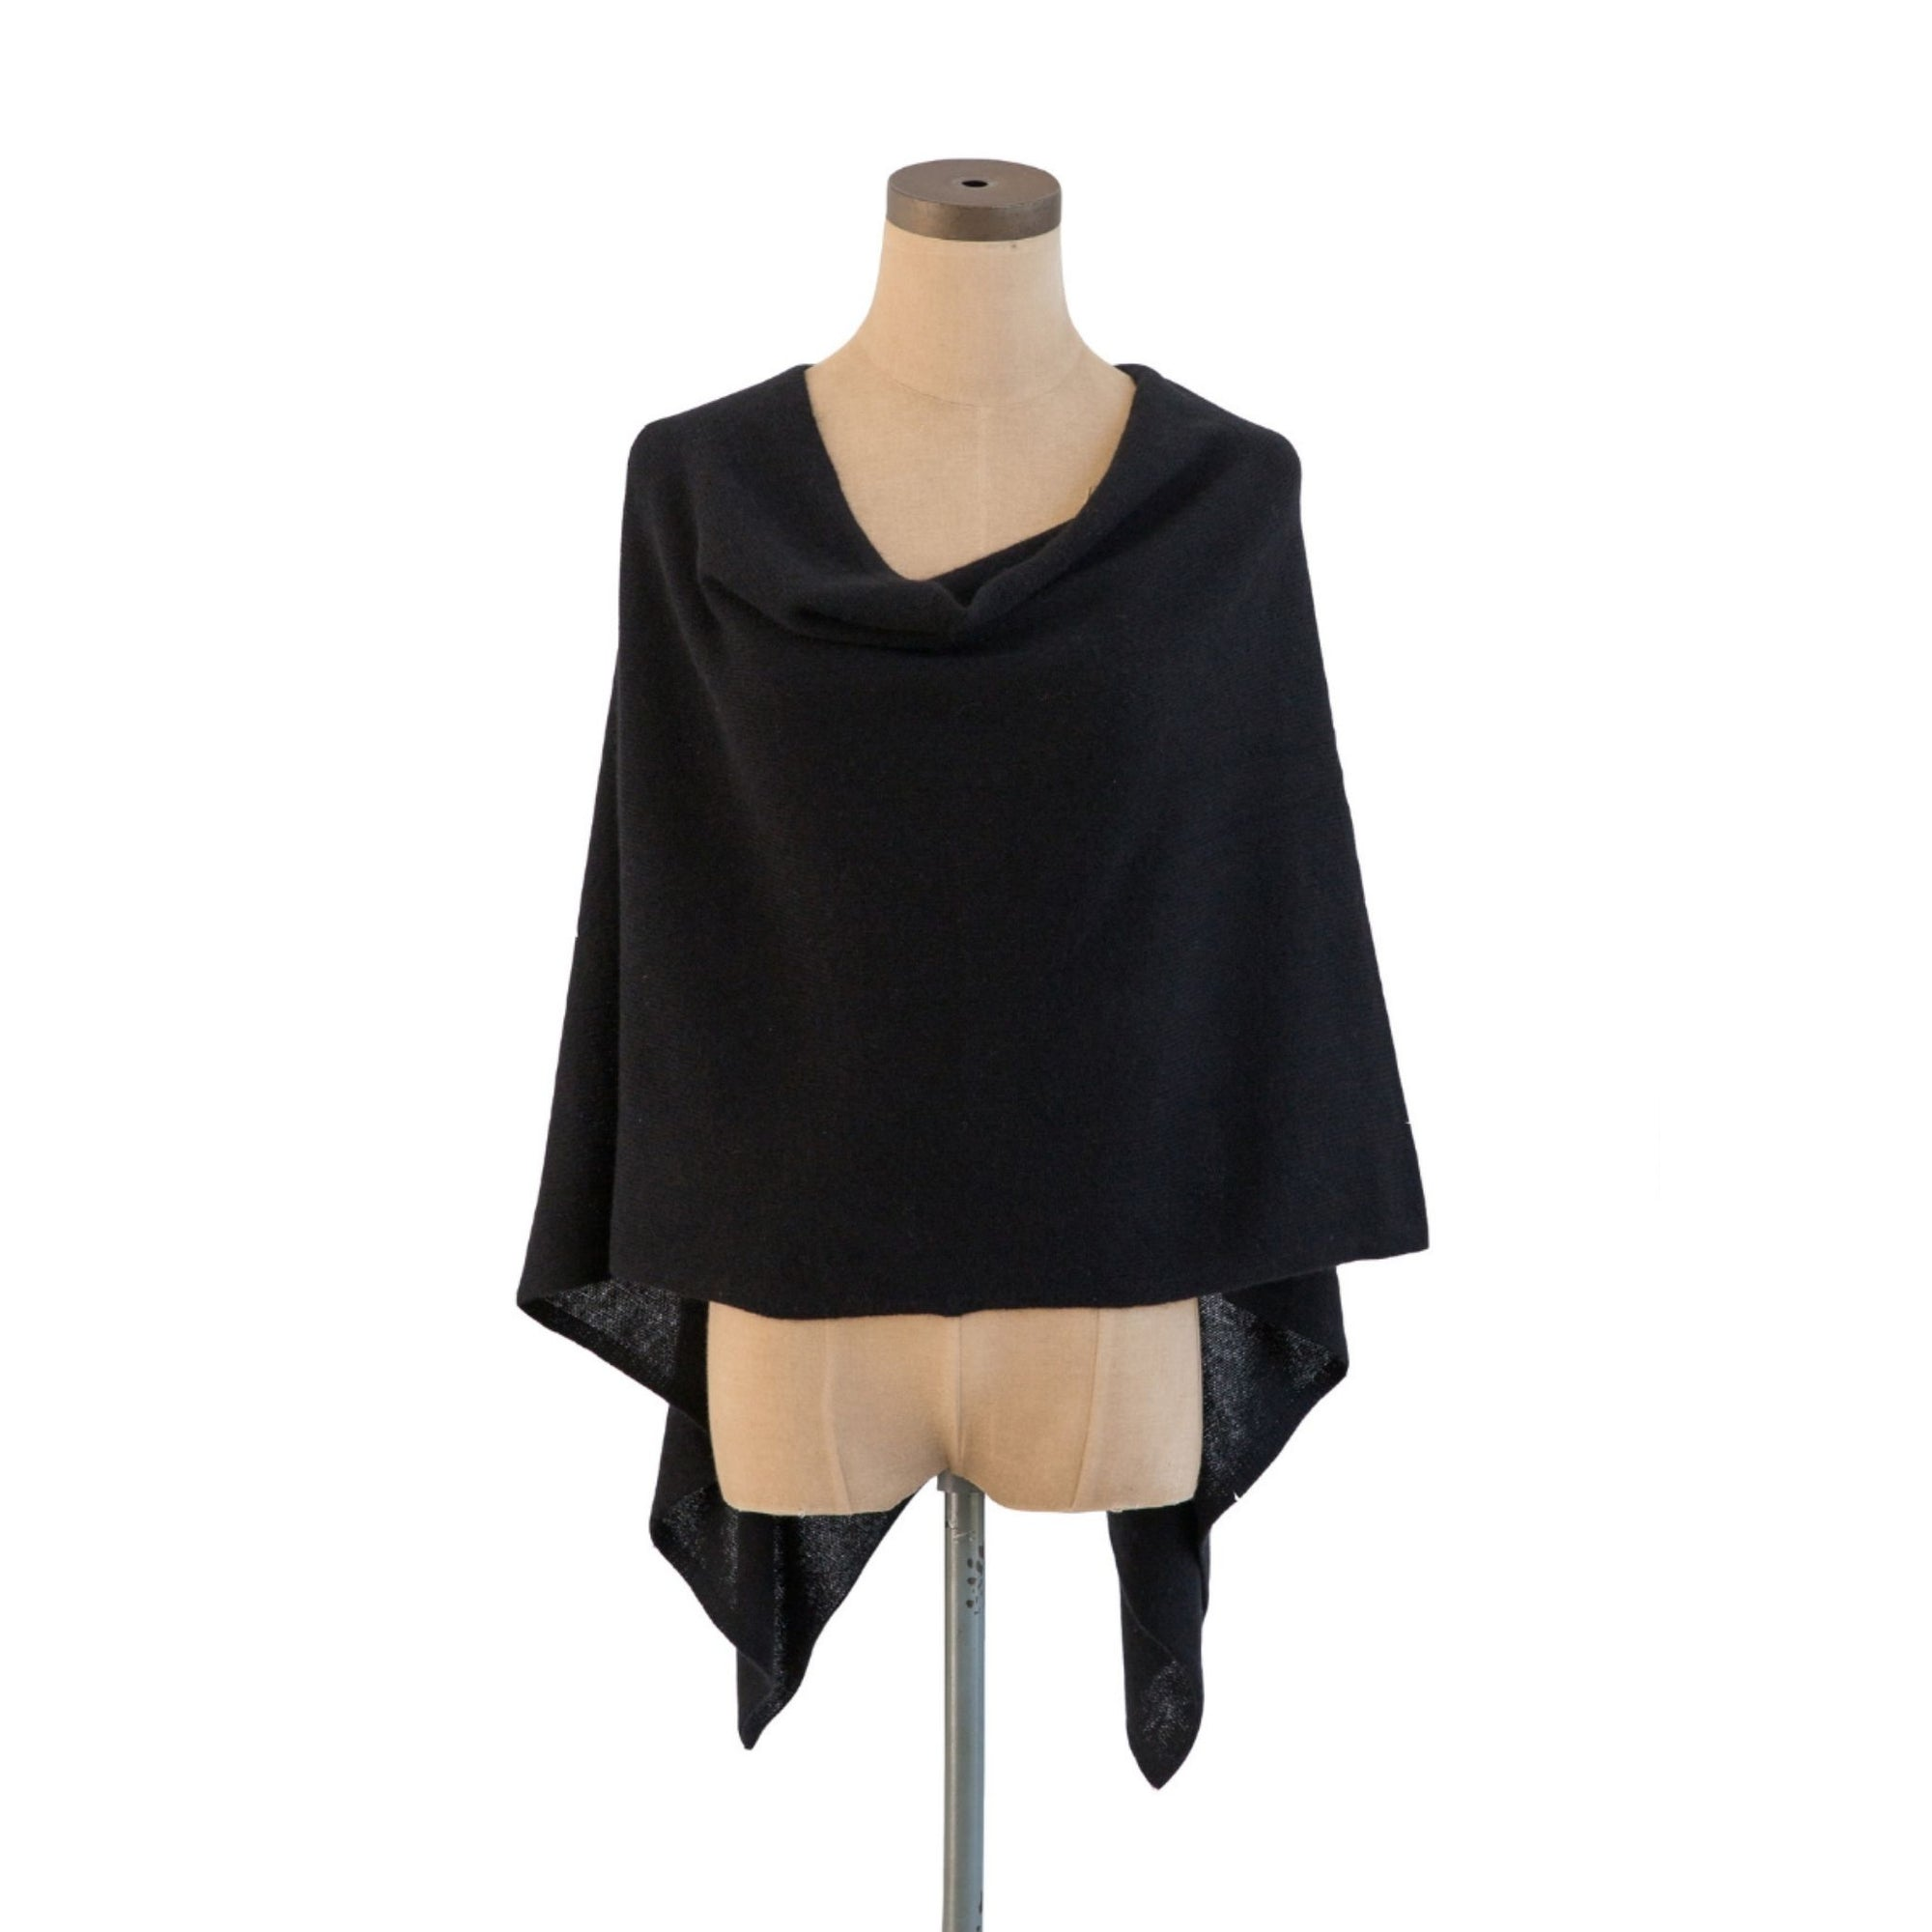 Ebony Cashmere Dress Topper